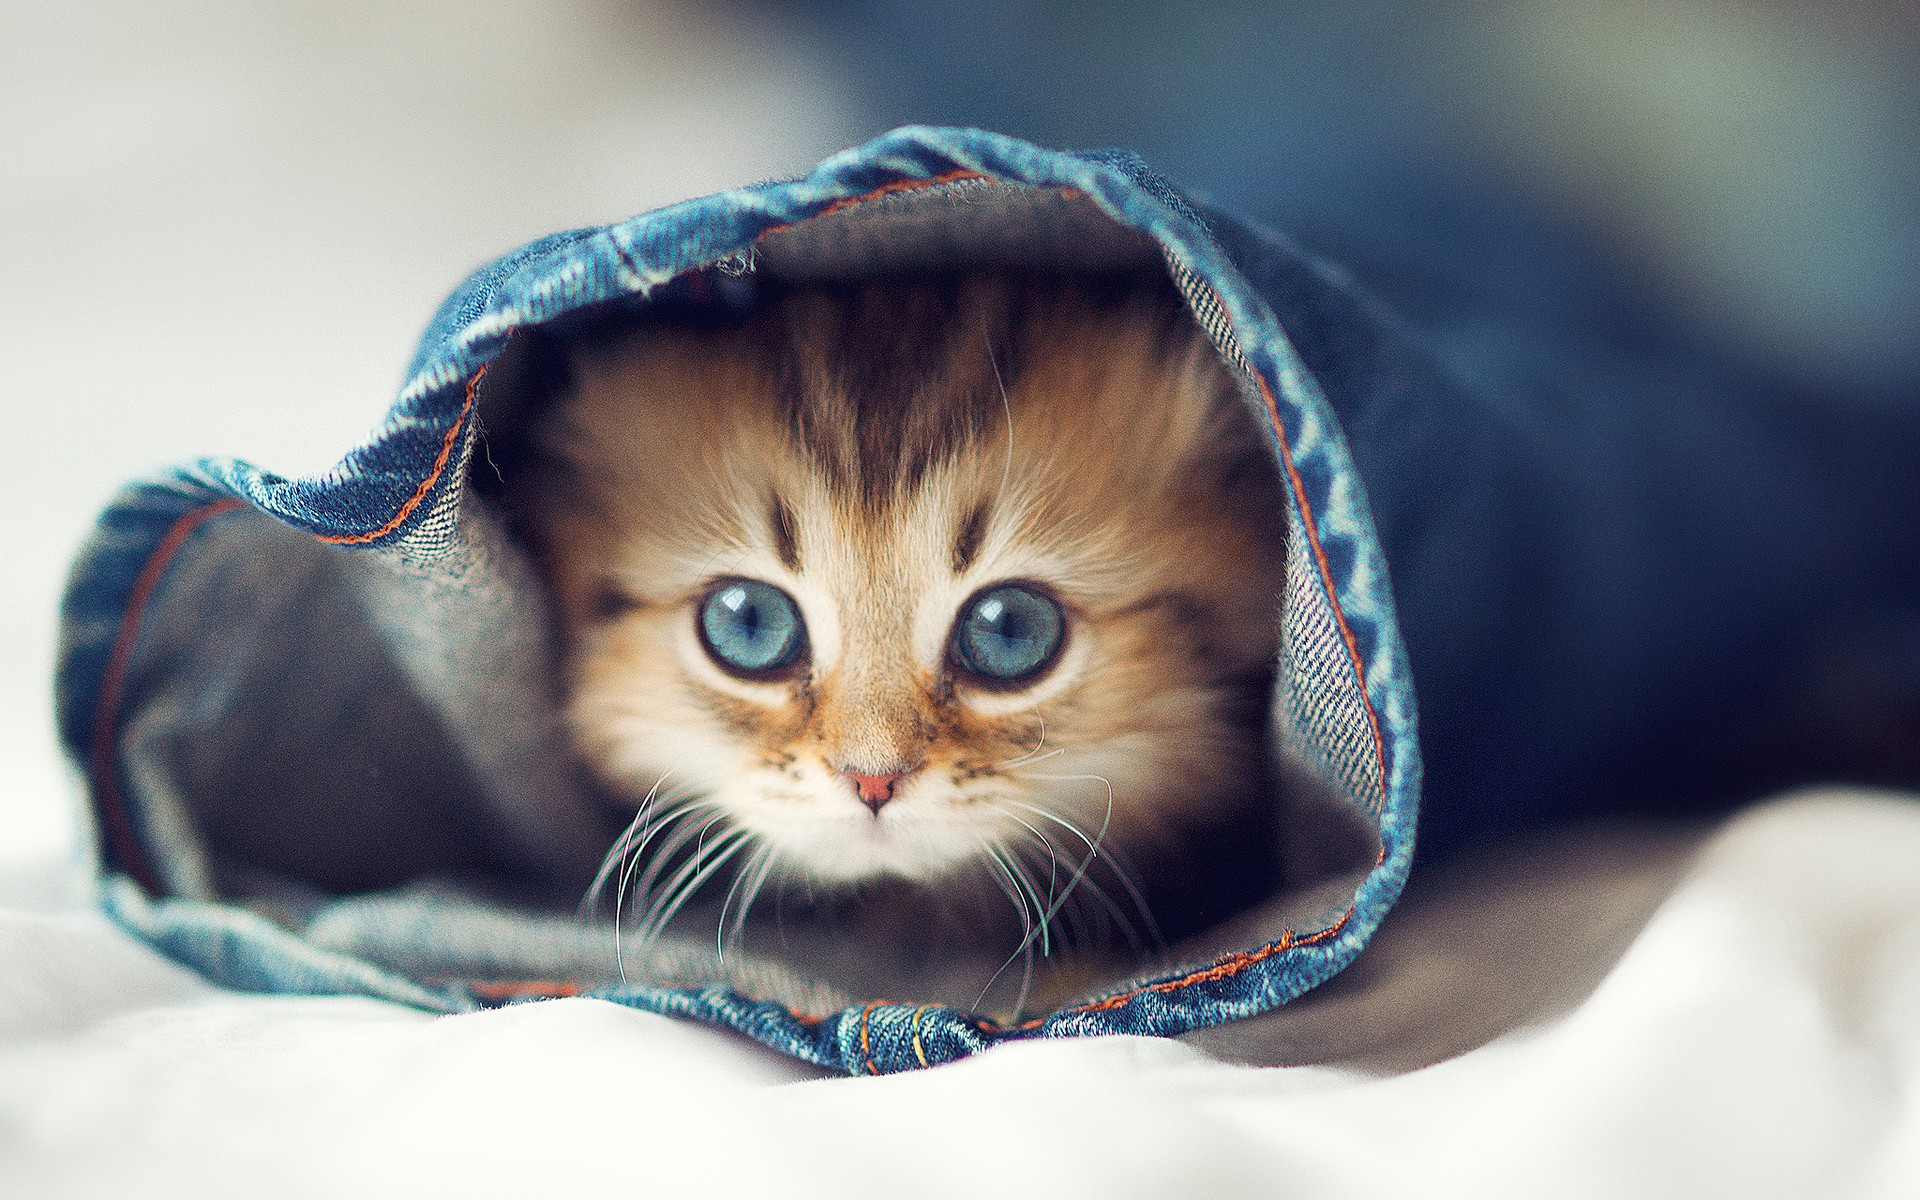 Cute-Cat-in-Blue-Jeans